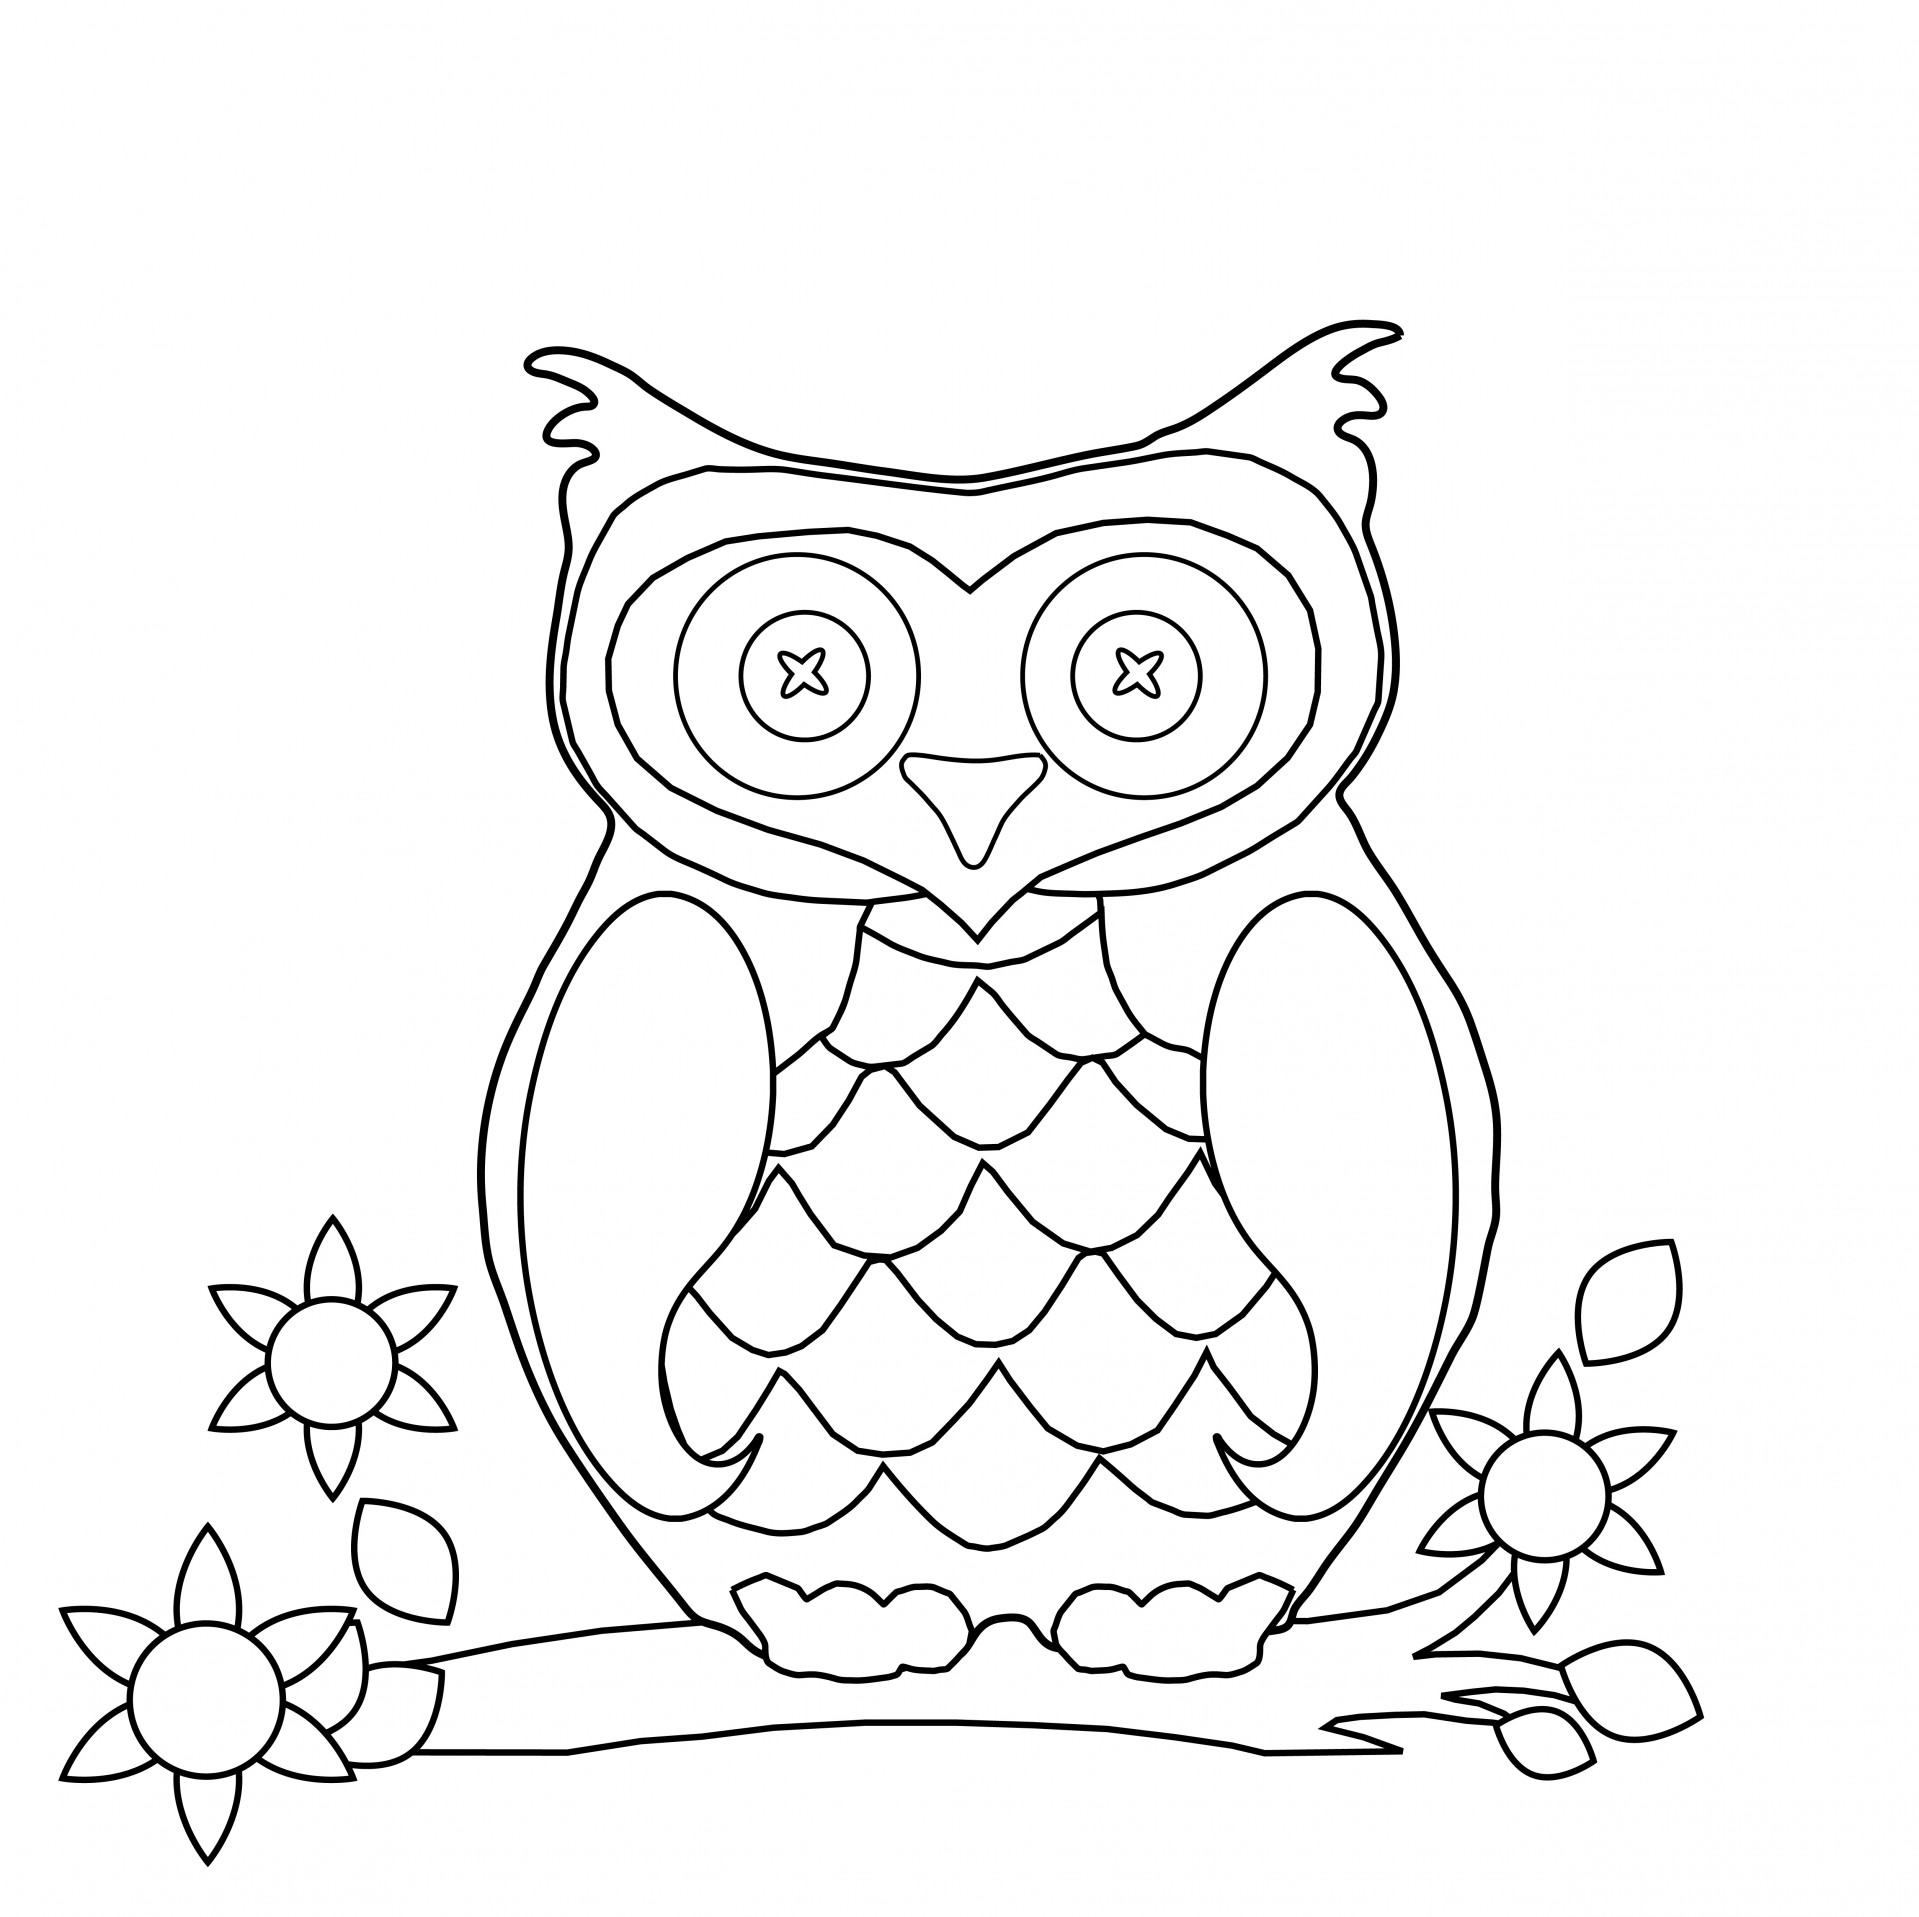 coloring pages of pets coloring pages best coloring pages for kids pages of coloring